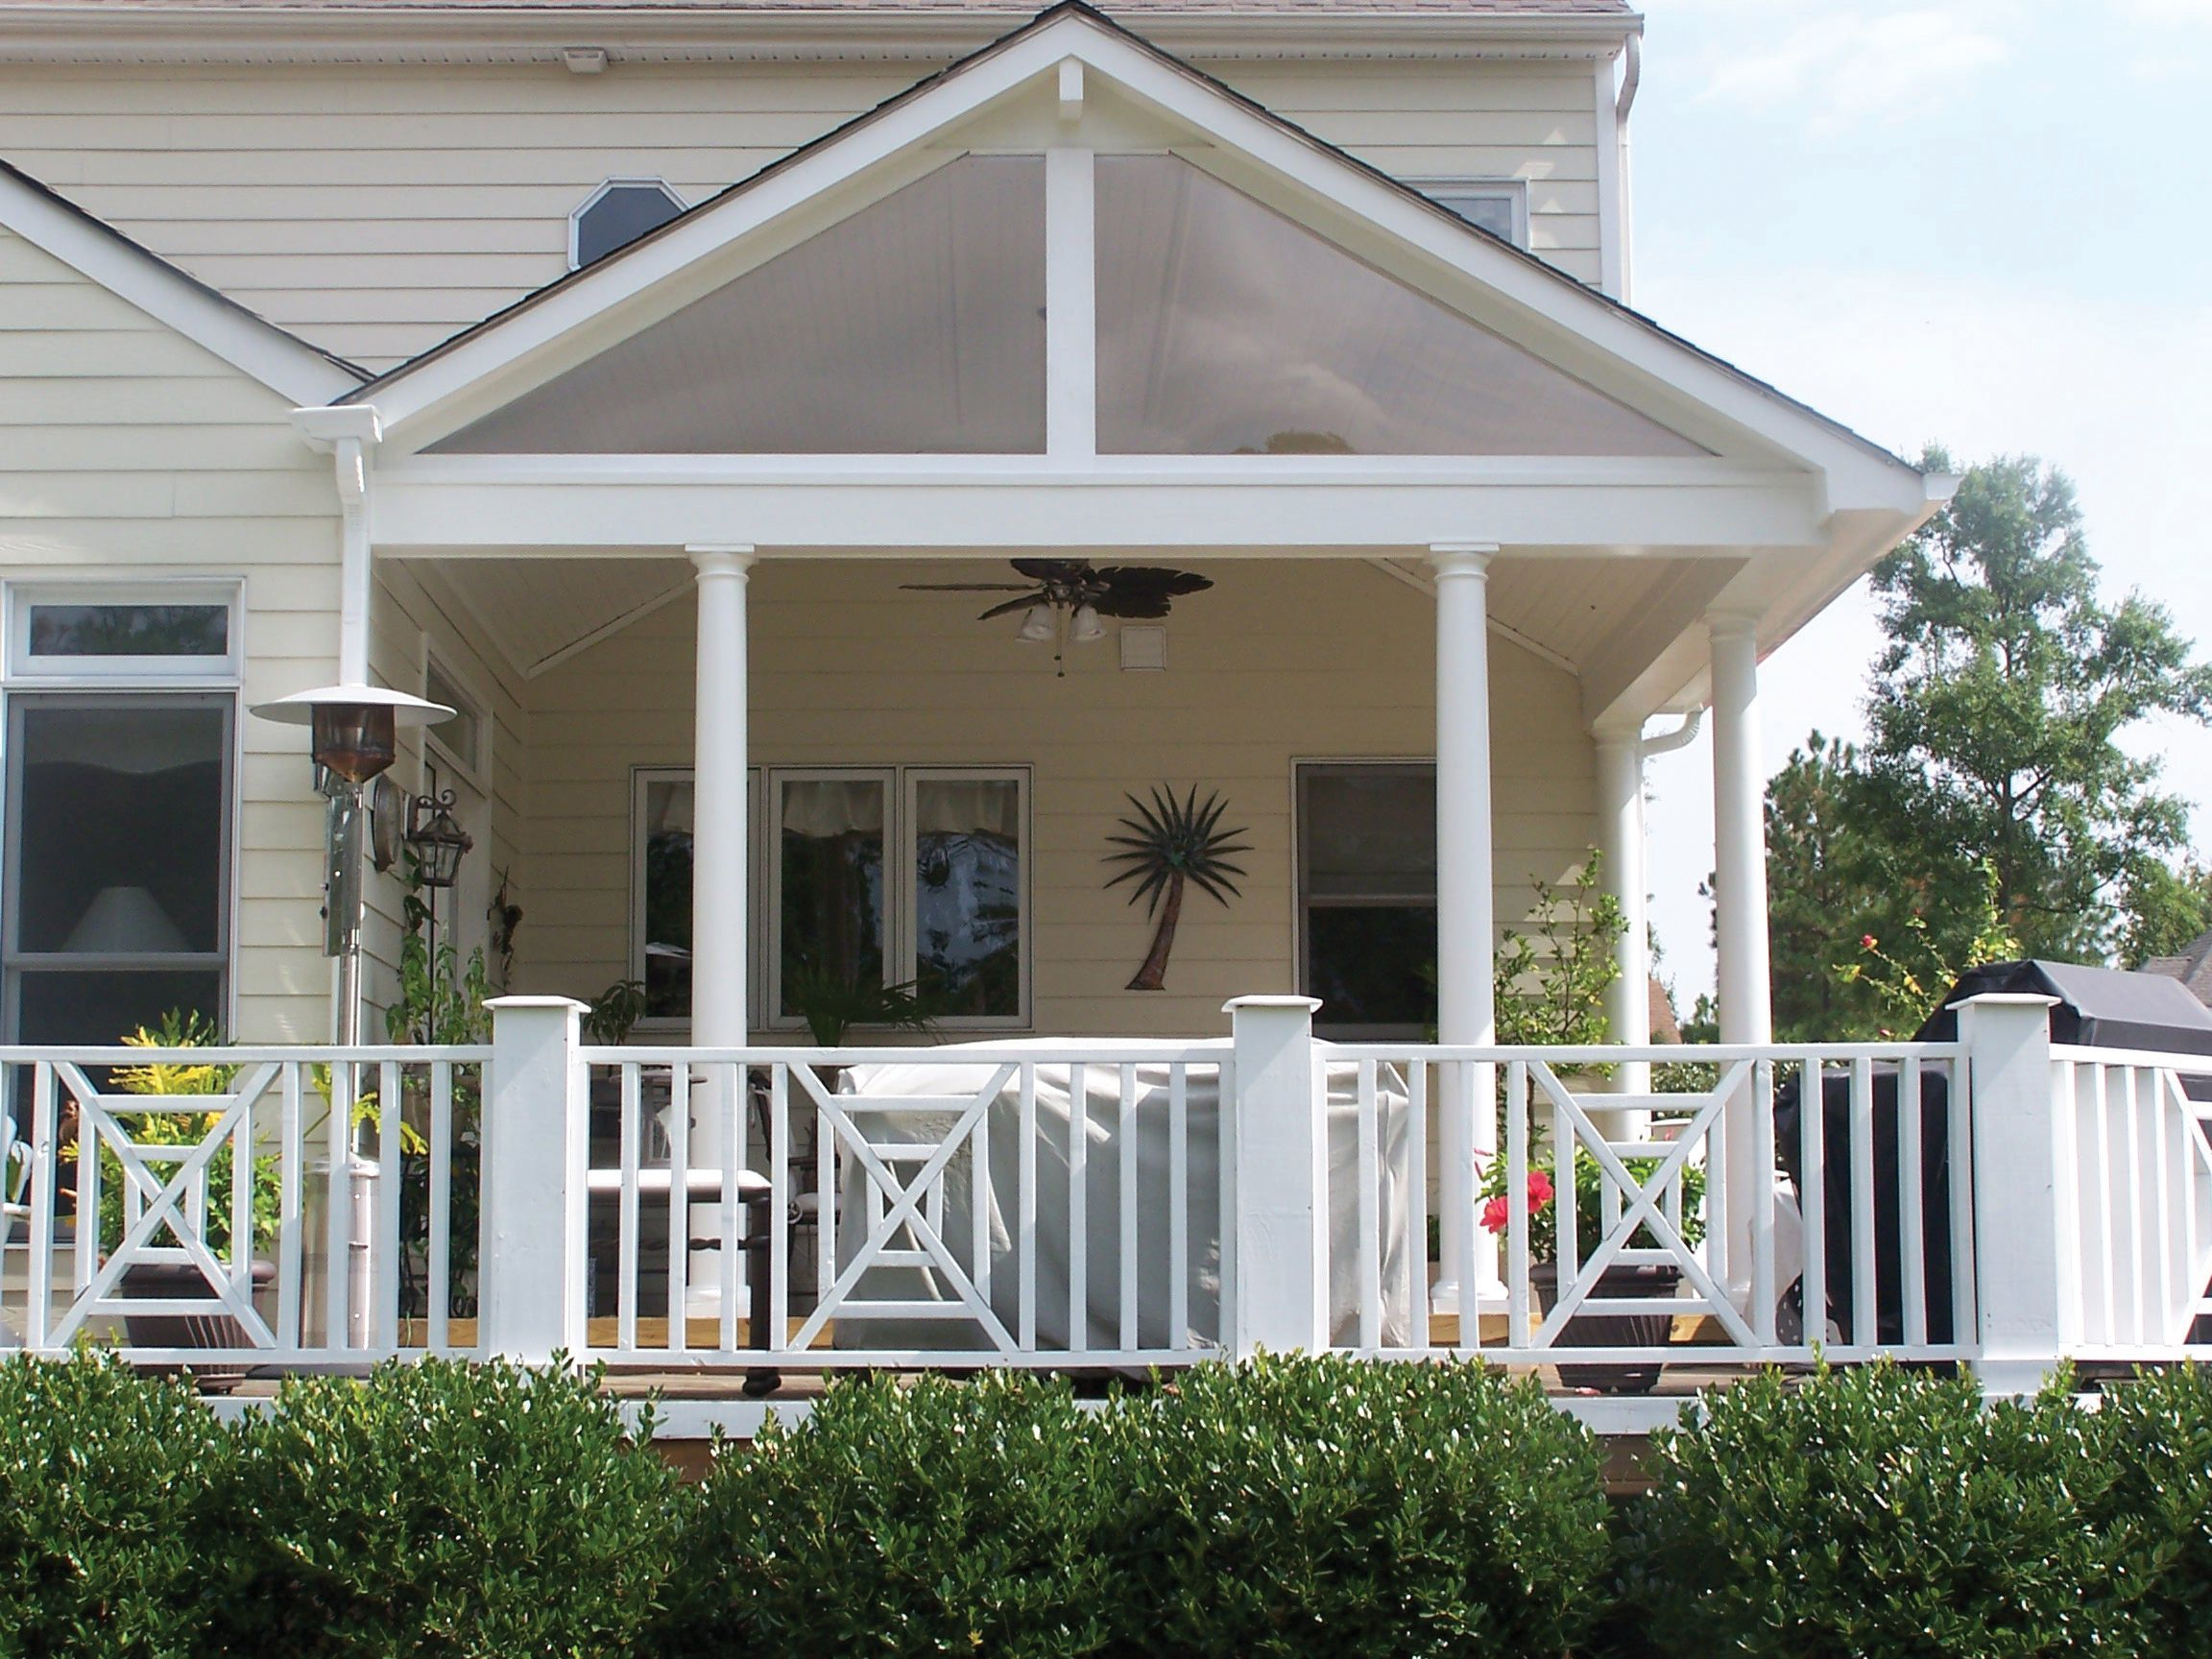 covered deck addition design this gabled roof lends clean design lines in this covered porch - Home Porch Design